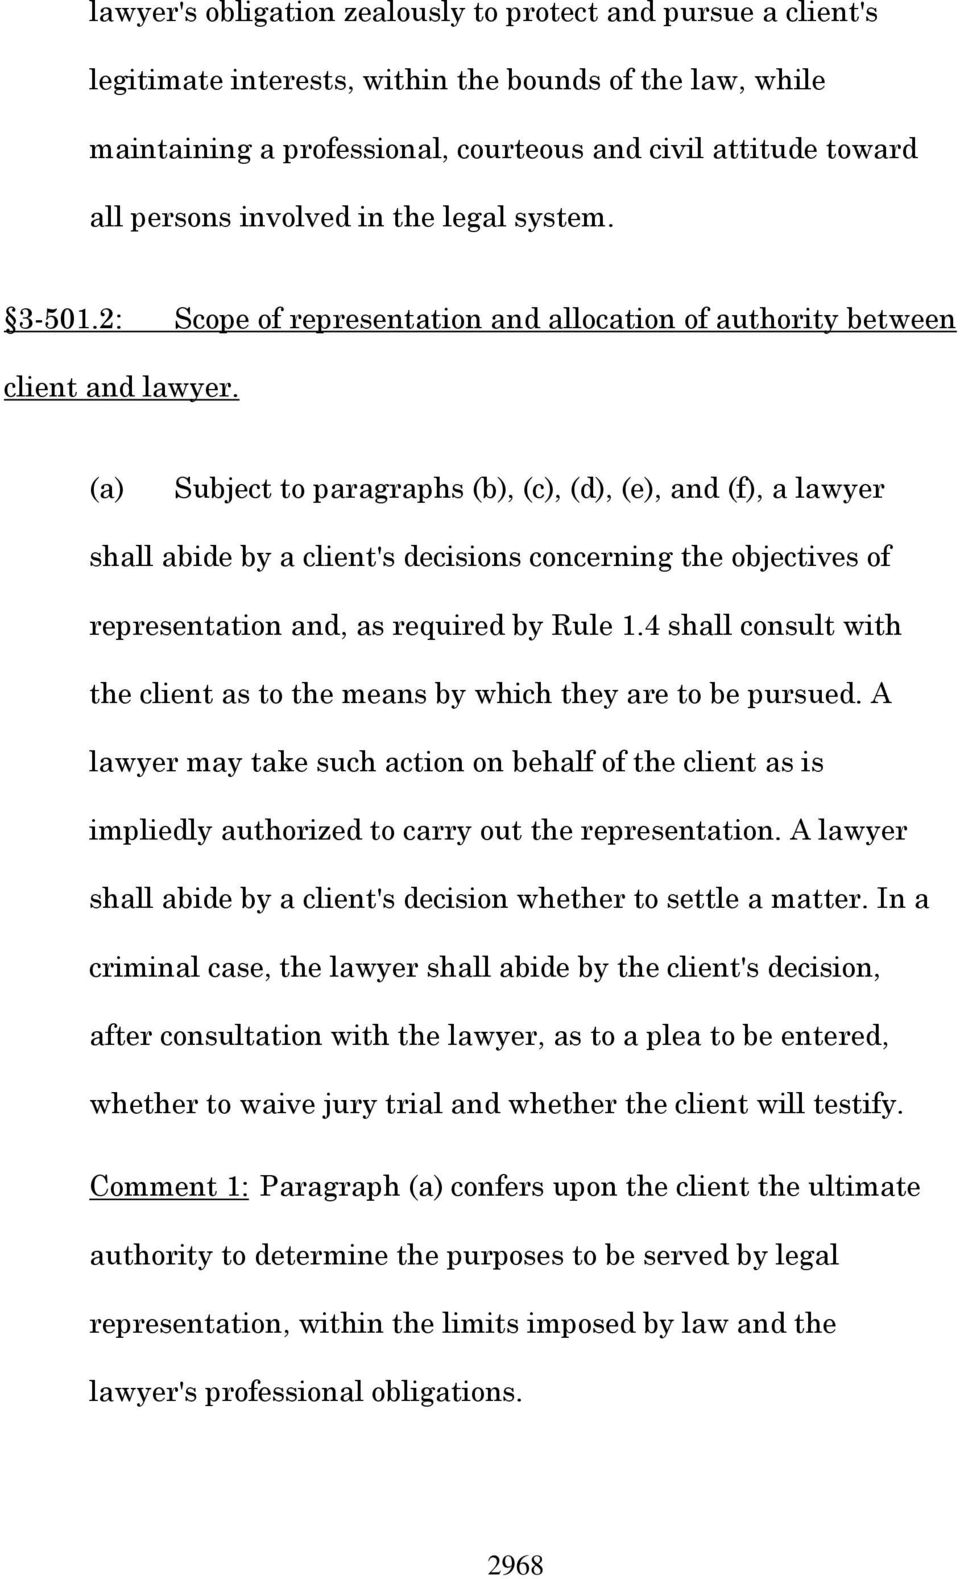 (a) Subject to paragraphs (b), (c), (d), (e), and (f), a lawyer shall abide by a client's decisions concerning the objectives of representation and, as required by Rule 1.